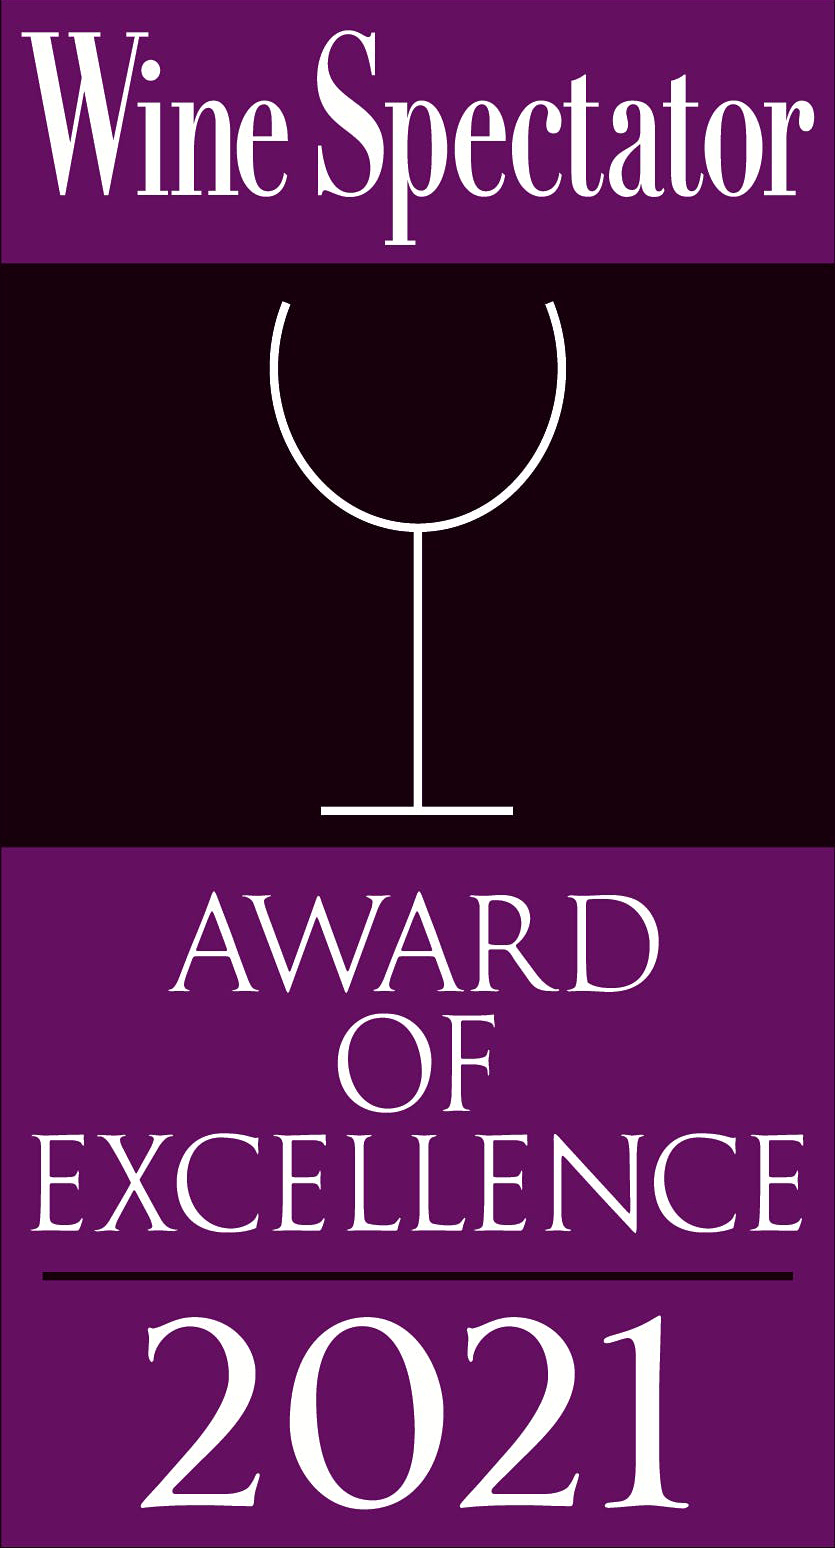 Caffe Itri Wine Spectator Award of Excellence 2021